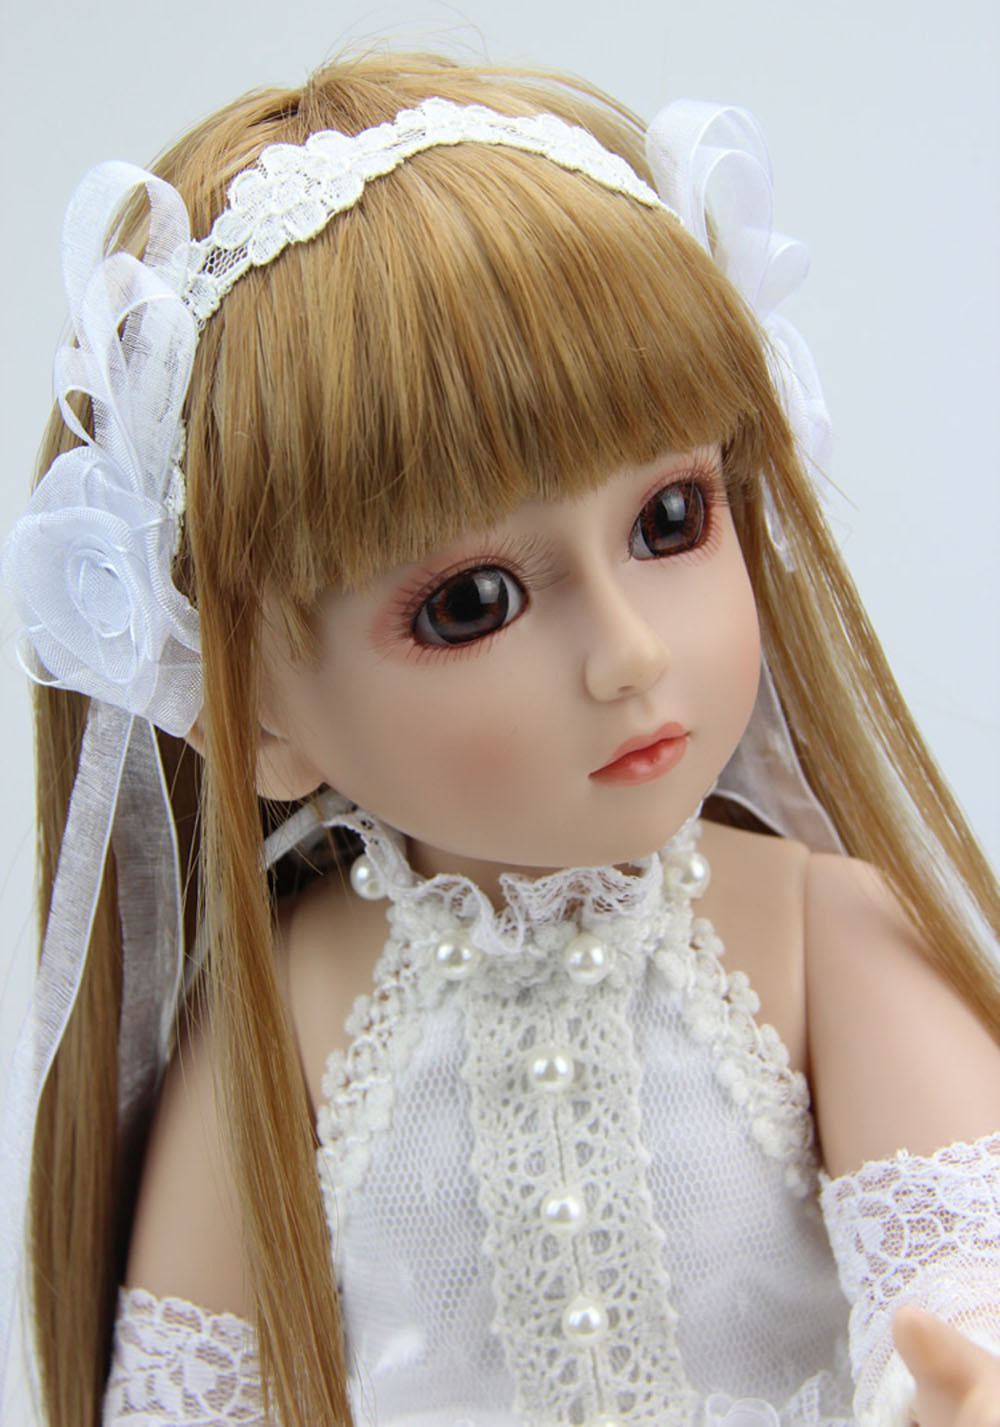 SD/change BJD doll and girls toys gifts Princess baby 18inch/45cm<br><br>Aliexpress